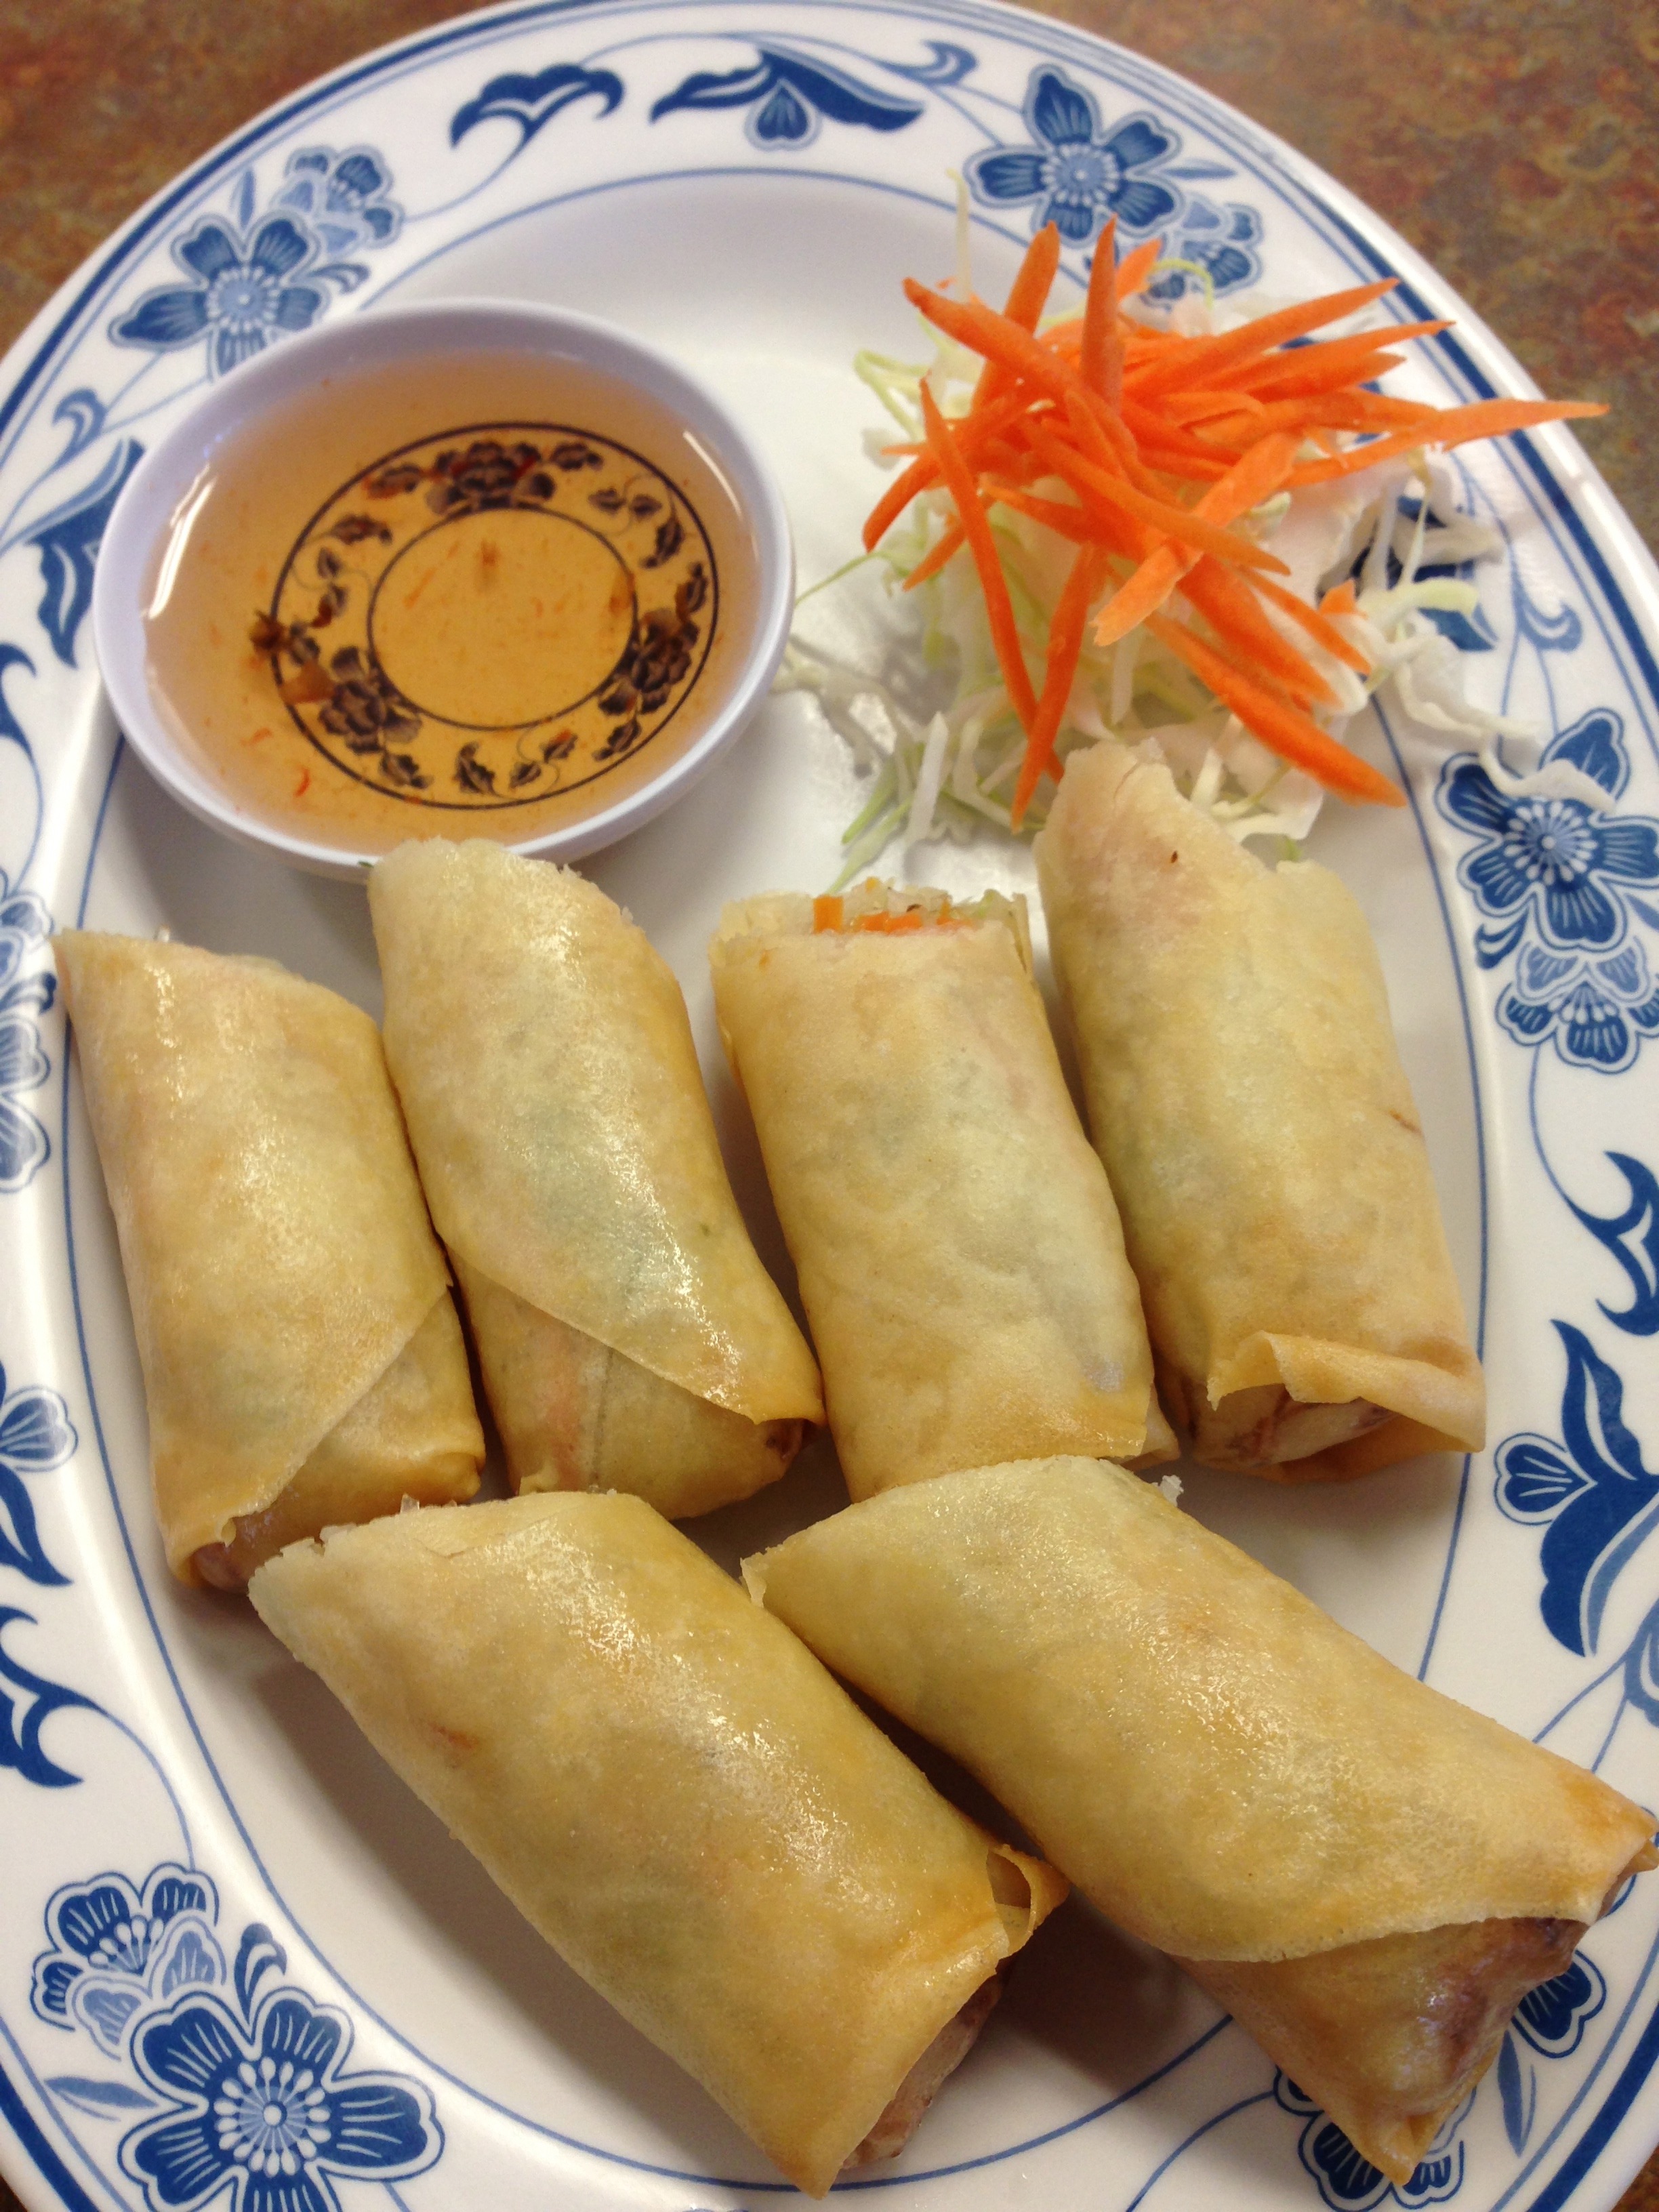 #1 DEEP FRIED SPRING ROLLS